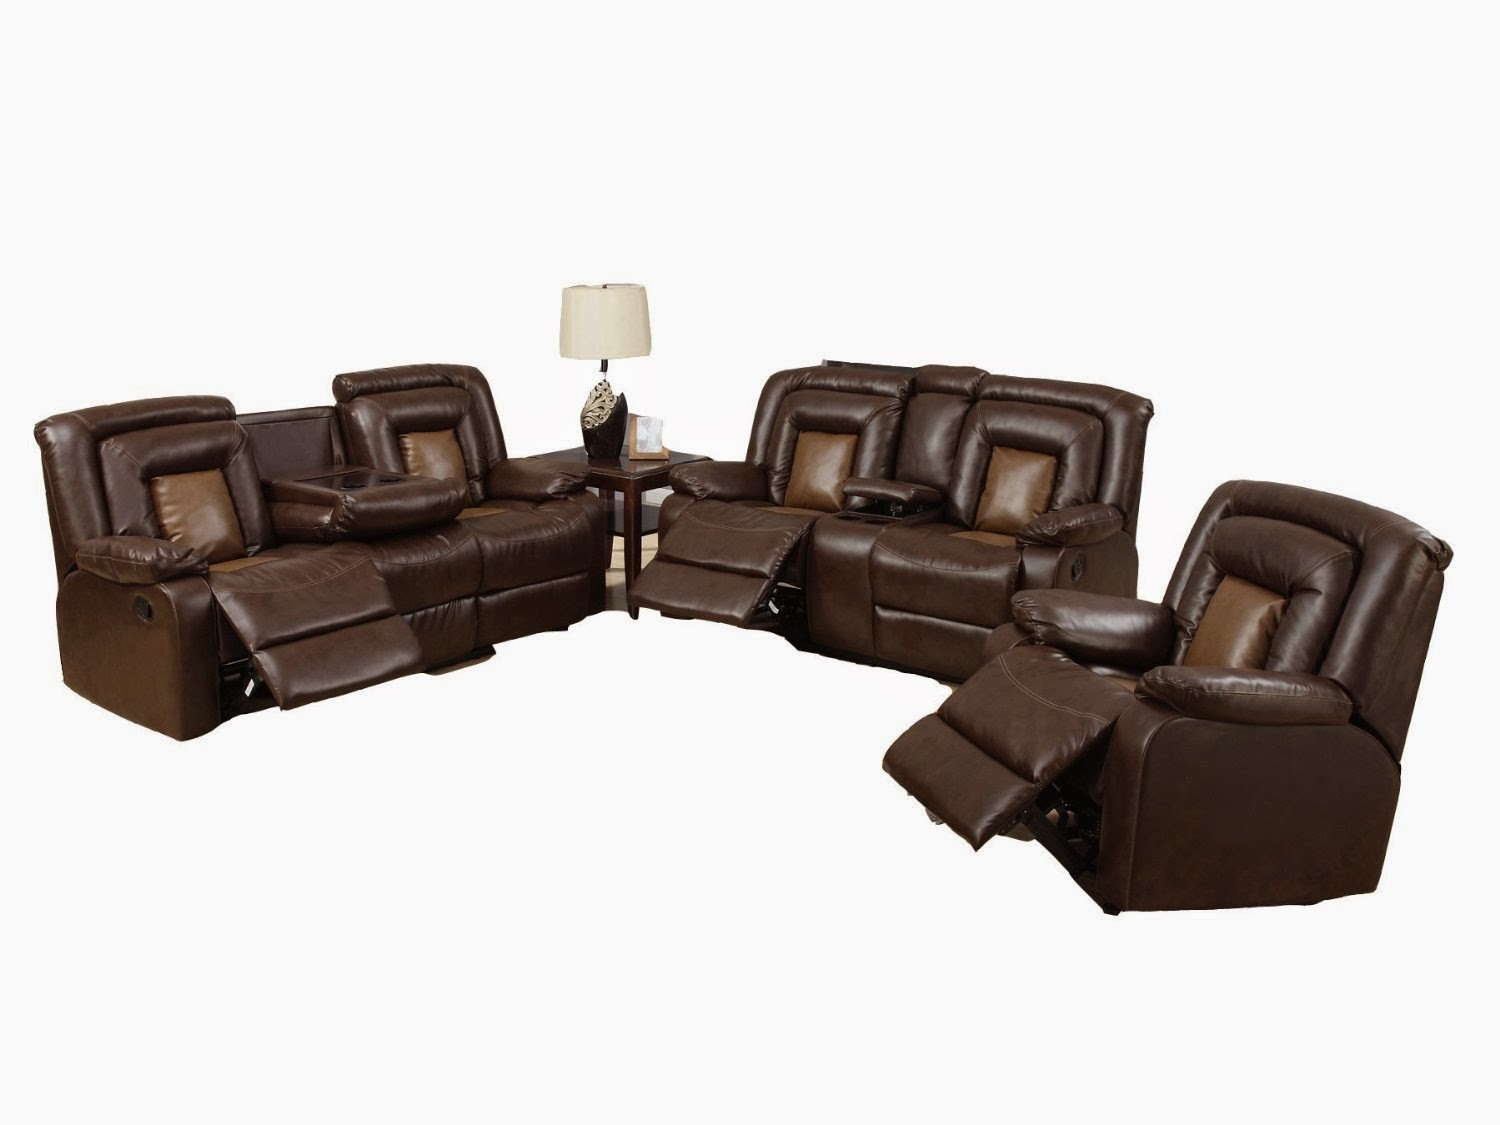 Beverly Dual Reclining Sofa With Drop Down Table With 5 Recliners And  Rocking Chair